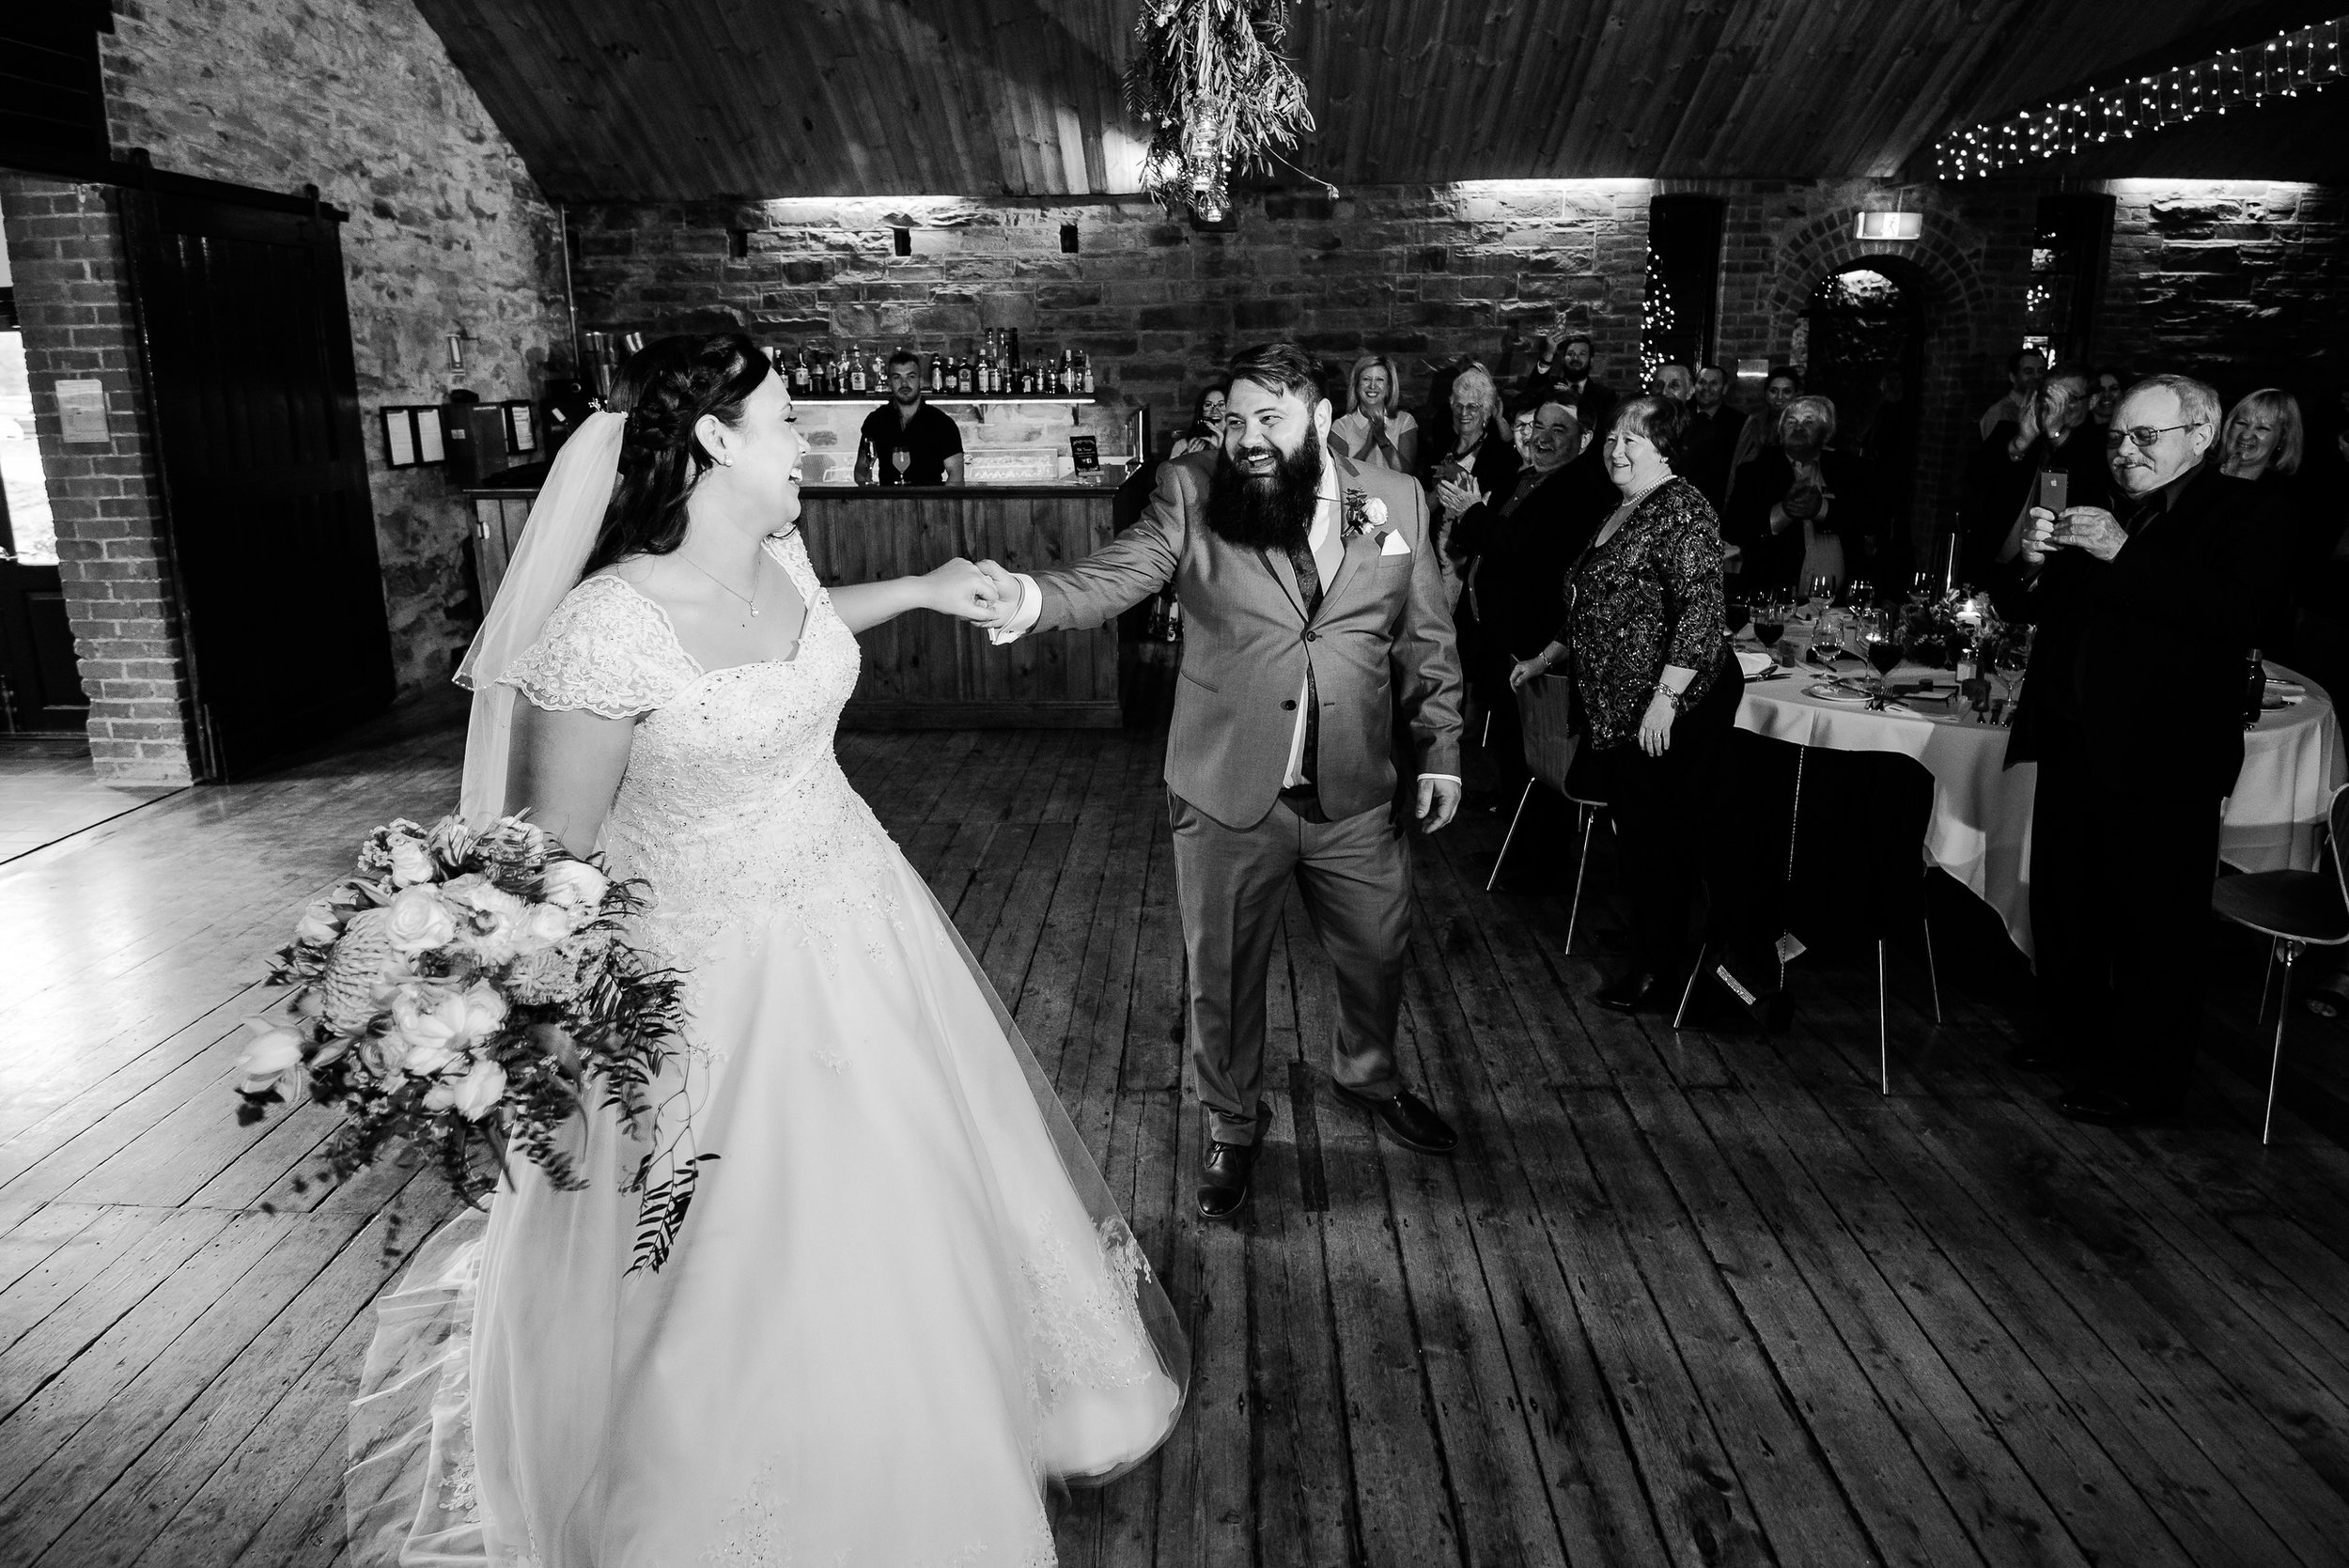 Chateau_Dore_Wedding_Photography_Justin_and_Jim-216.JPG